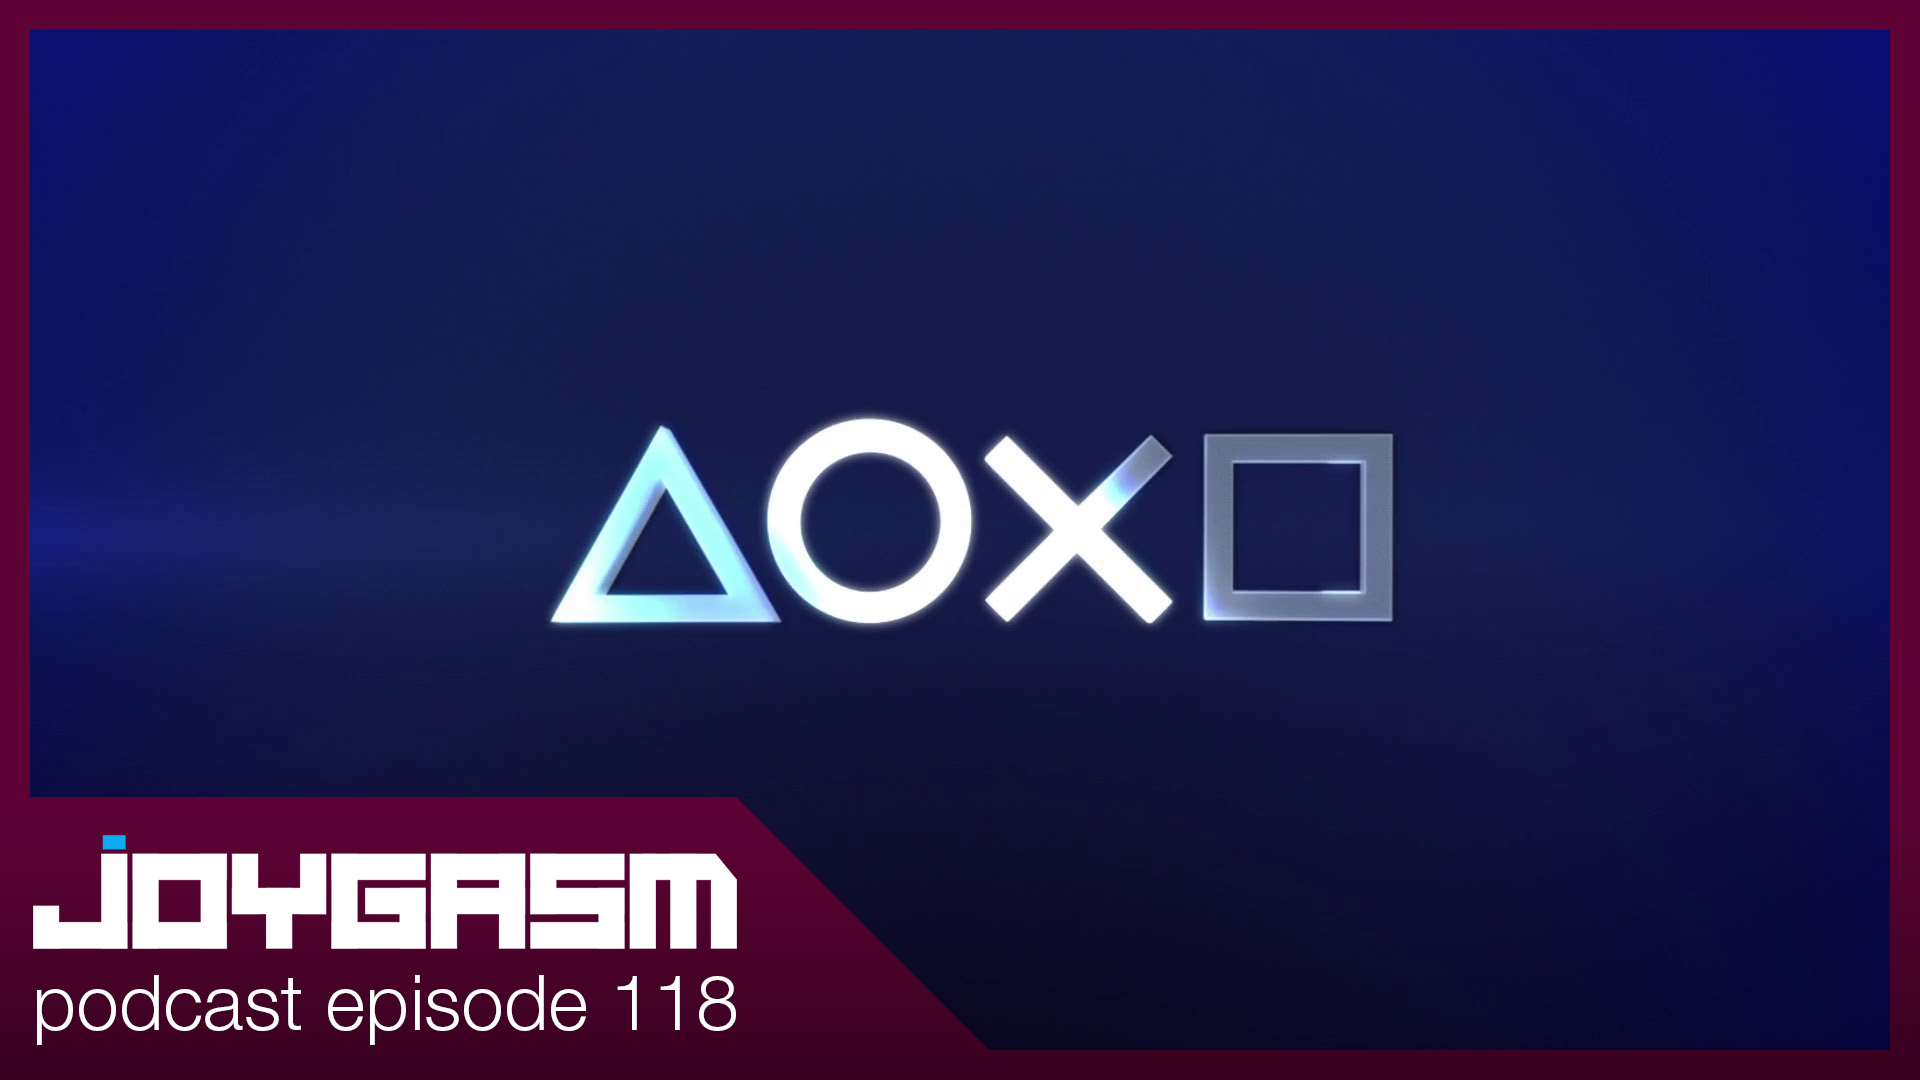 Ep. 118: PS5 Details, Jason Mamoa Shaves His Beard, & More